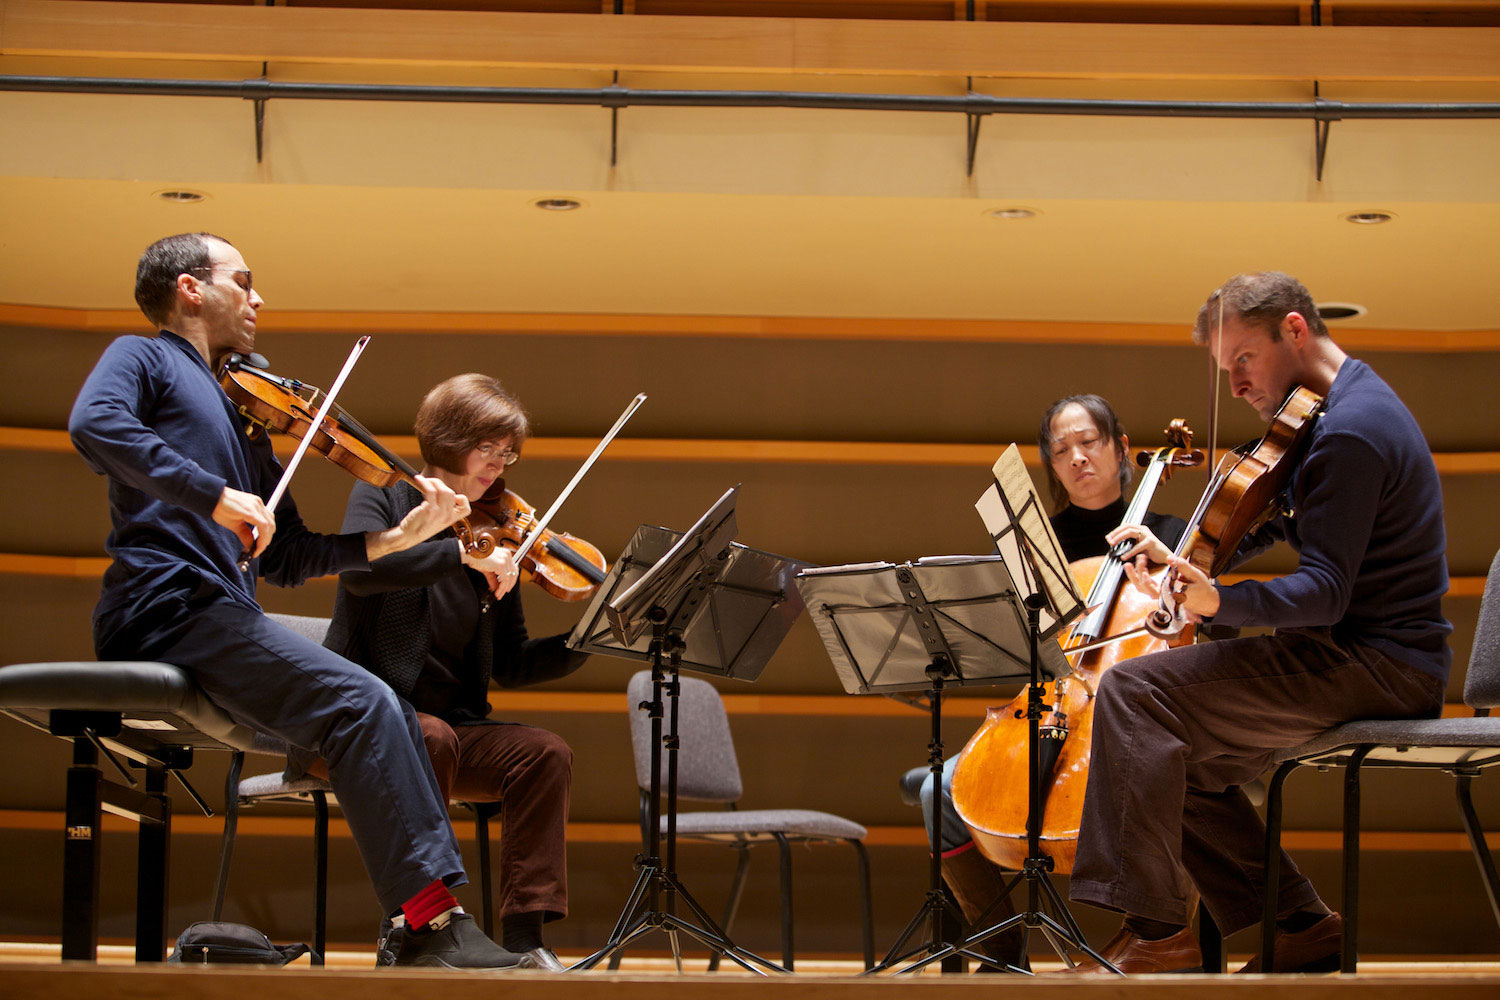 Segerstrom Center presents BrentanoLRG